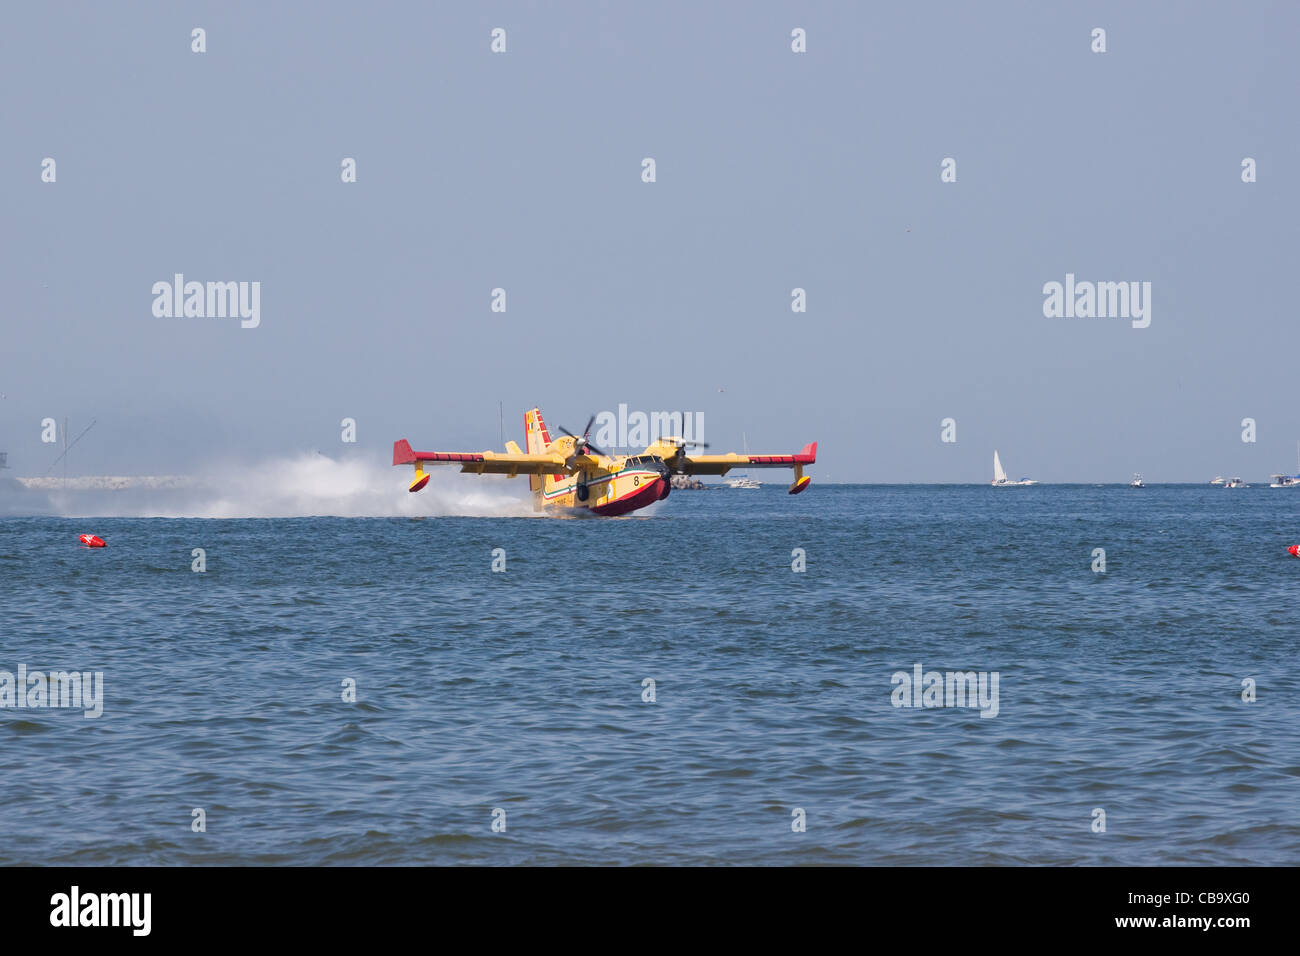 A Canadair 415 in action during an airshow - Stock Image